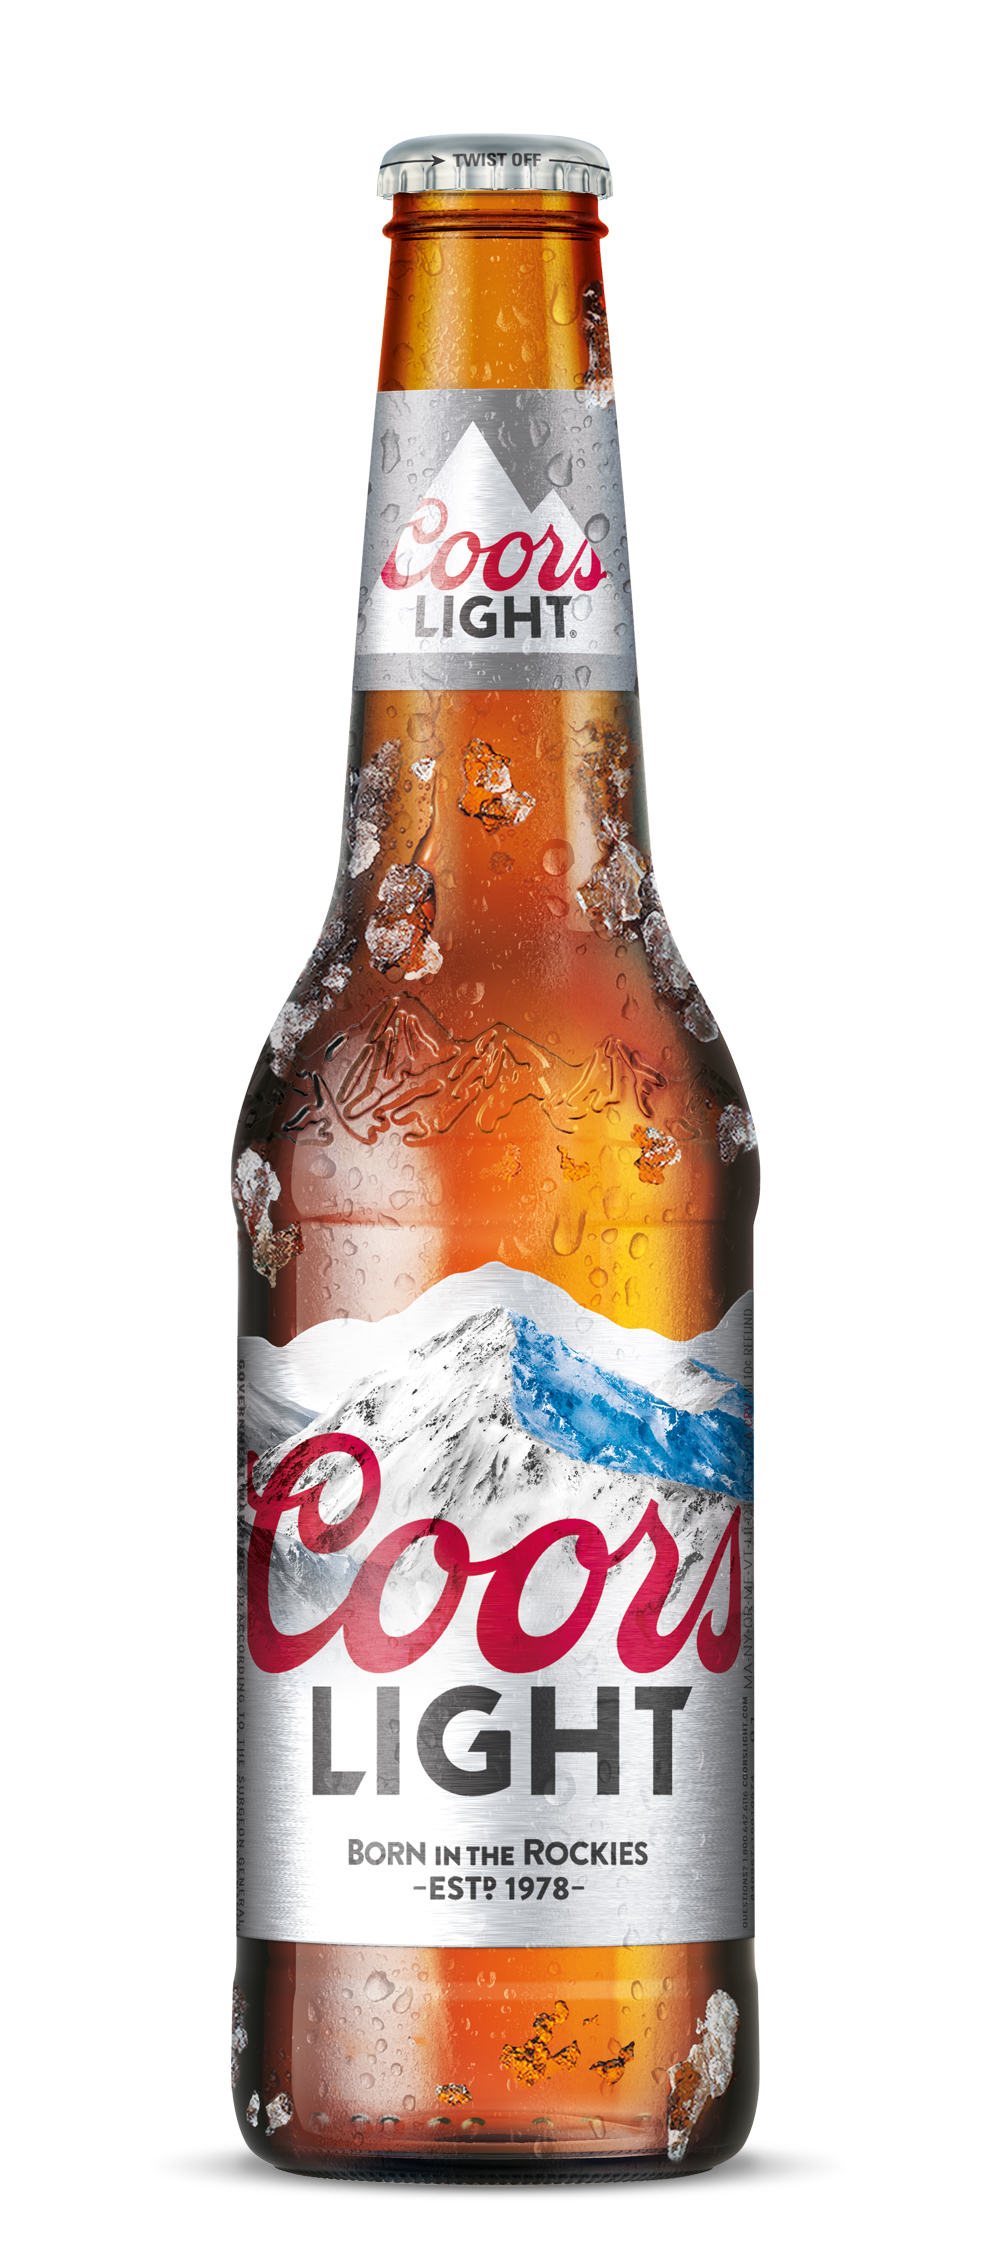 Coors Light Bottle Image